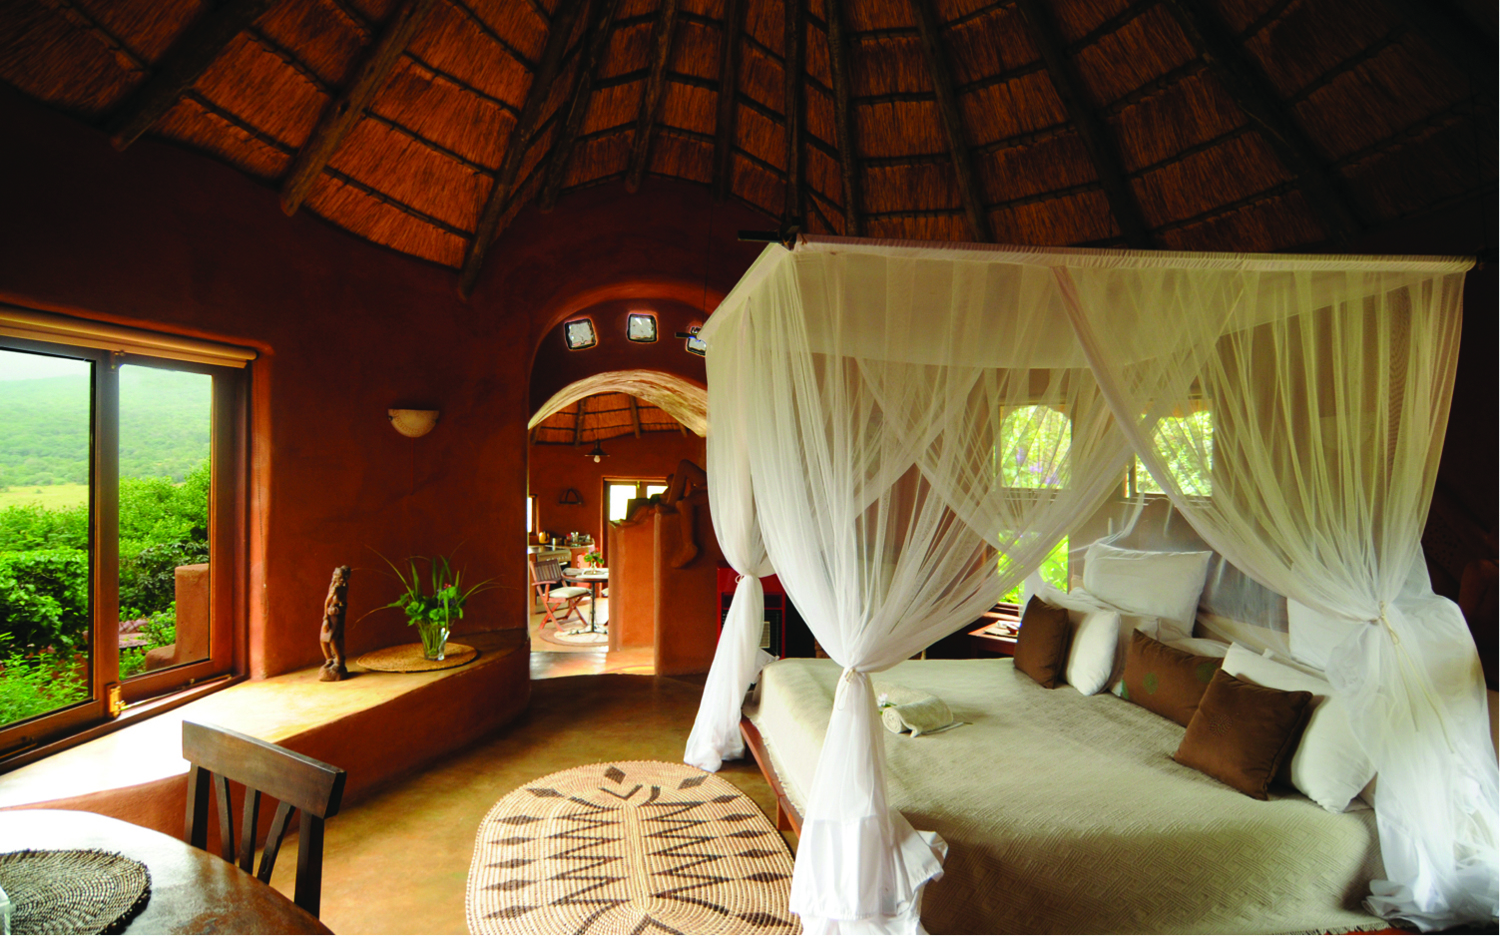 Accommodations South Africa Globetrotting Safari Style Romance In South Africa Recommend